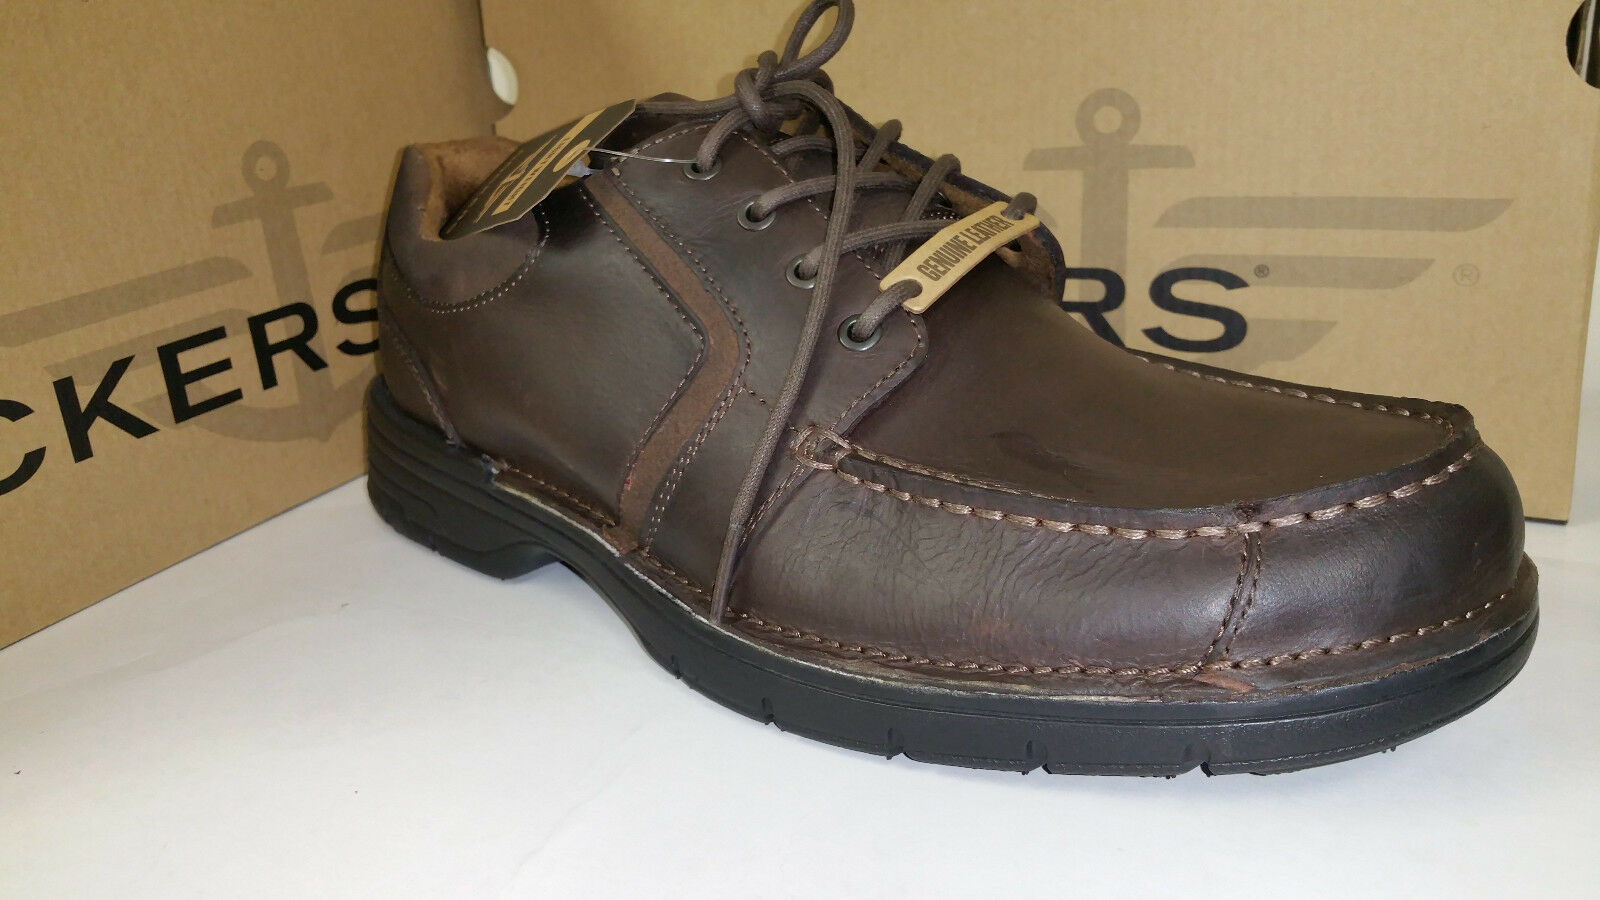 Scarpe casual da uomo Dockers Stowe Light Weight Brown Leather Casual Shoes size 7-12